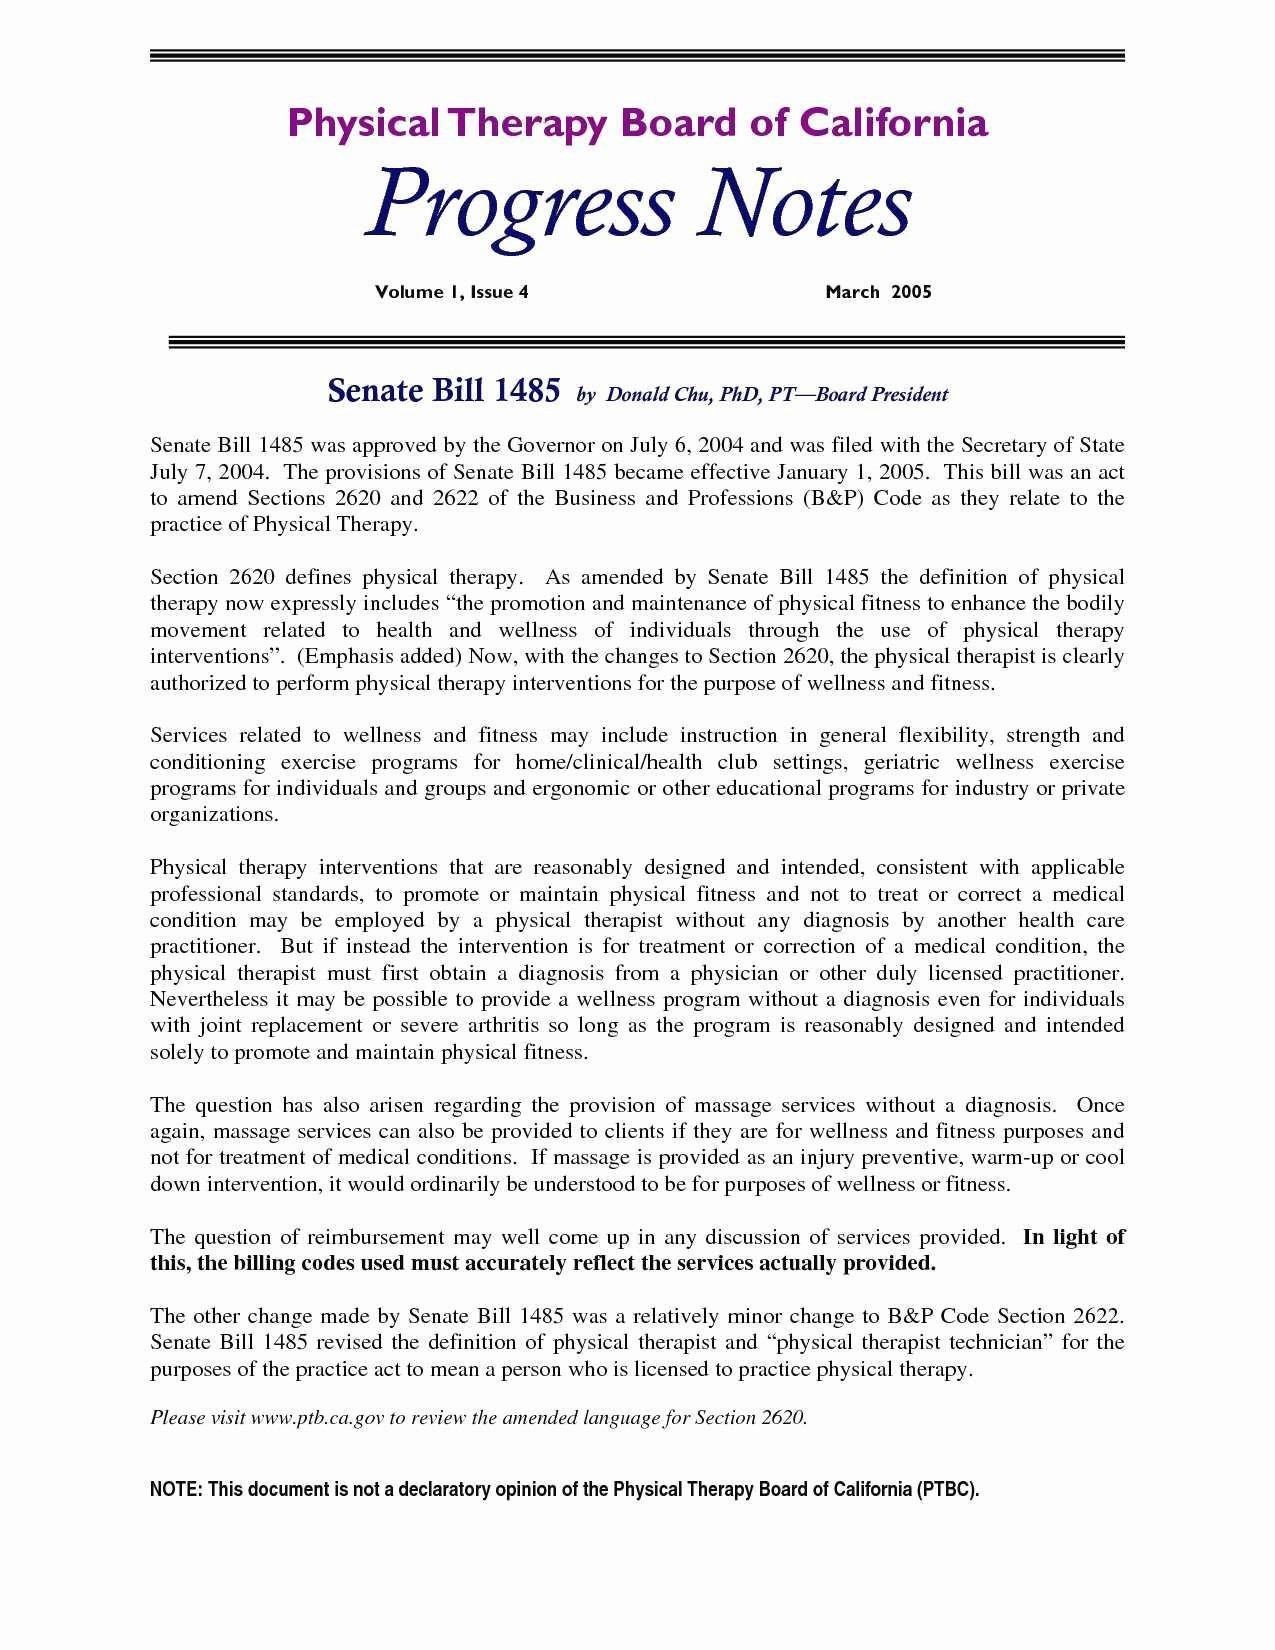 Soap therapy Note Template Inspirational therapist Notes Template Fresh soap Note Example